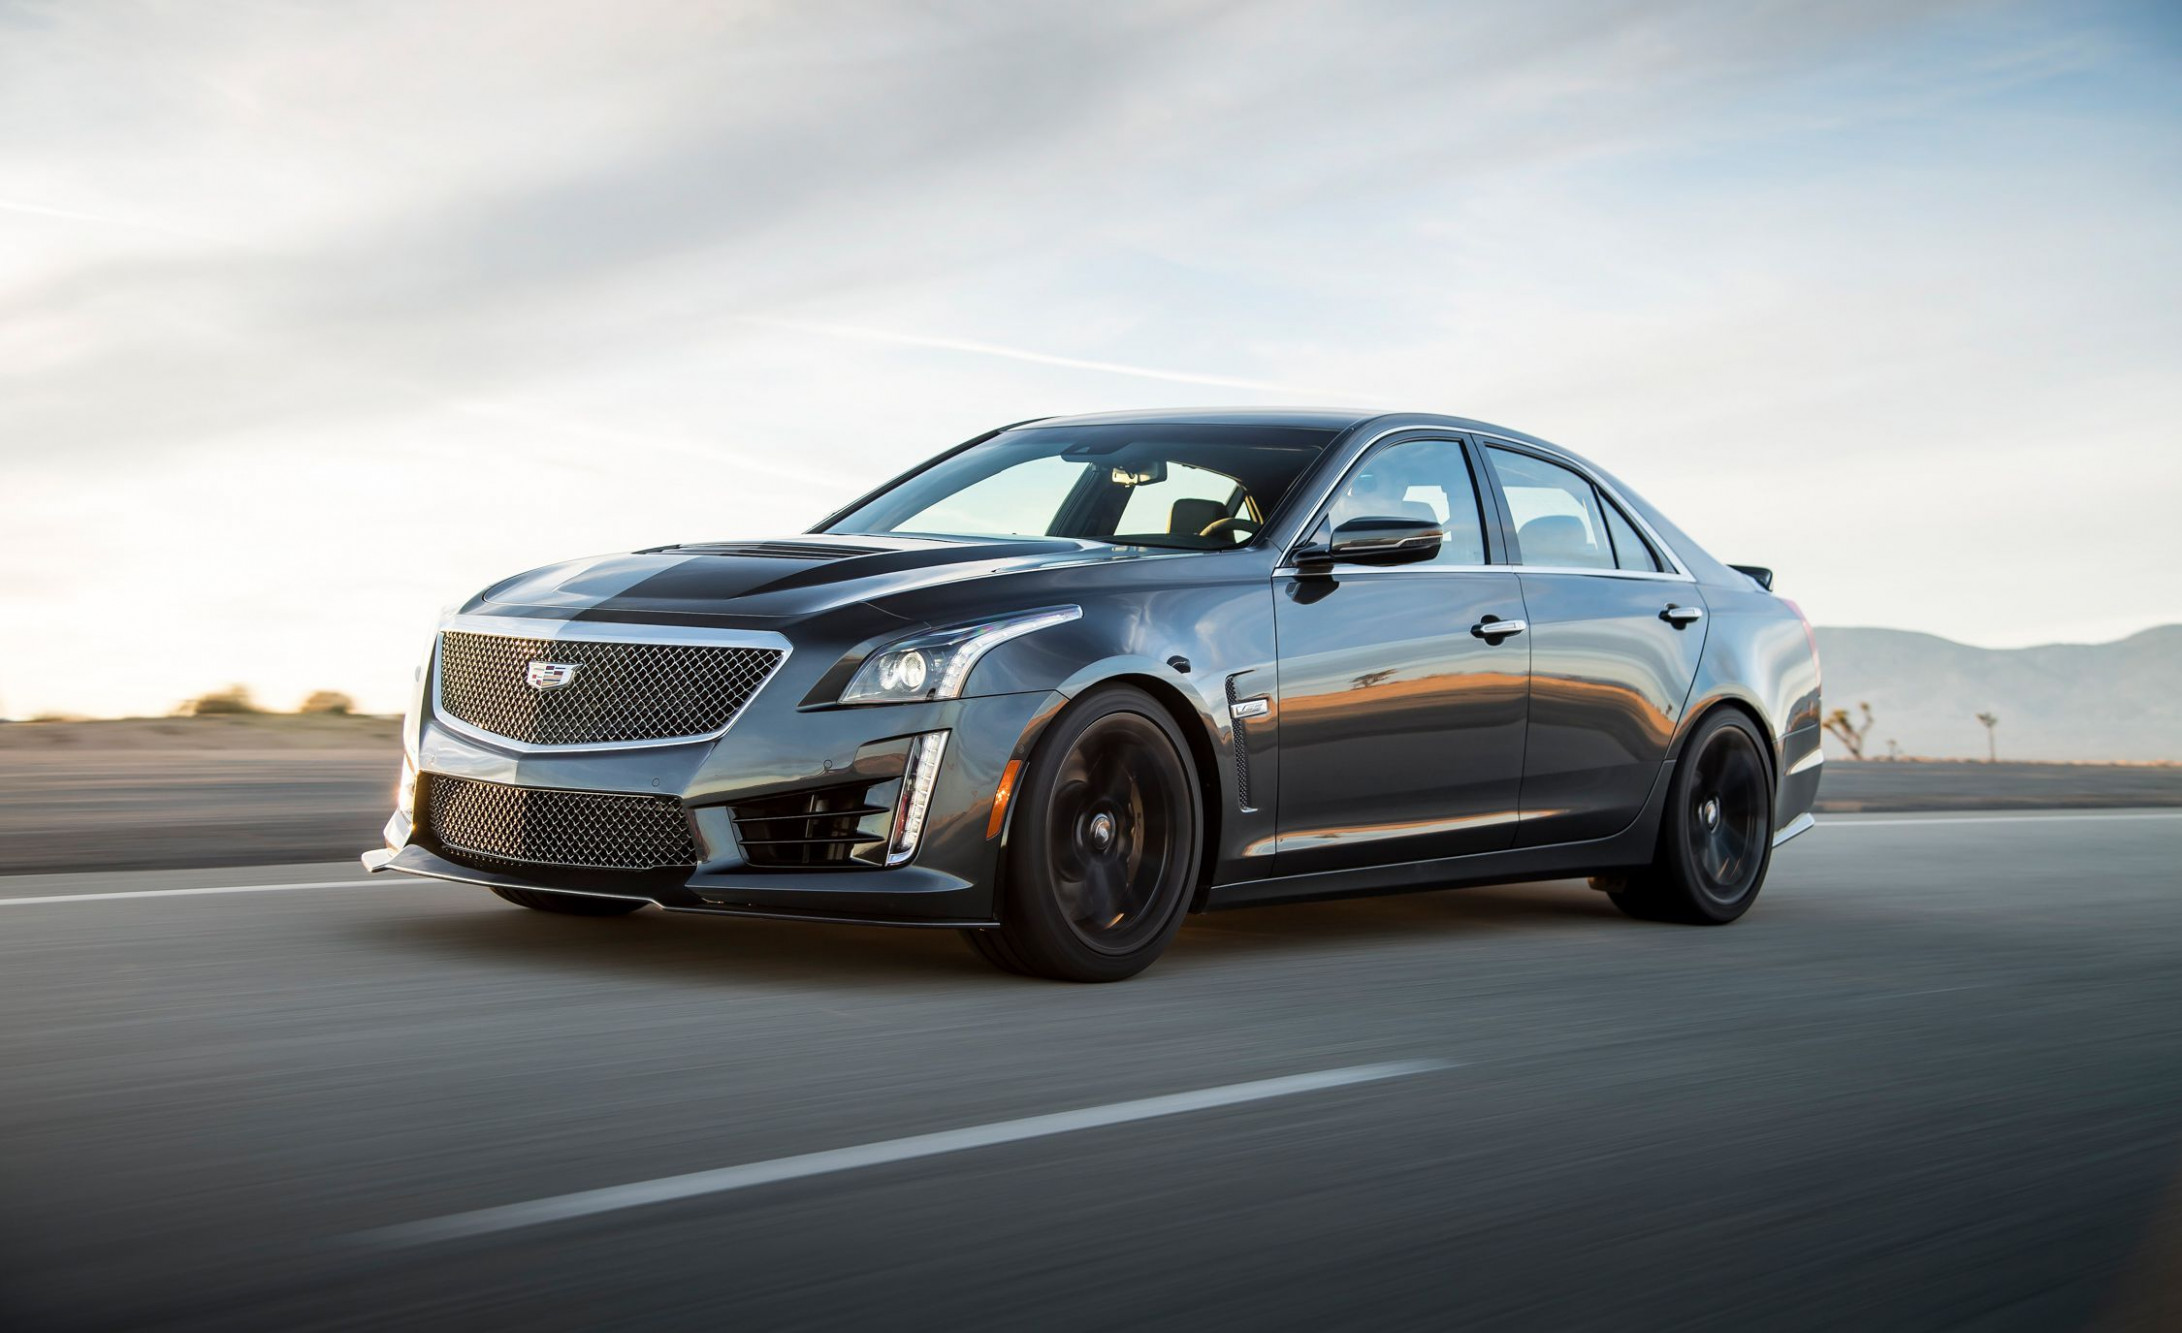 6 Cadillac CTS-V Review, Pricing, and Specs